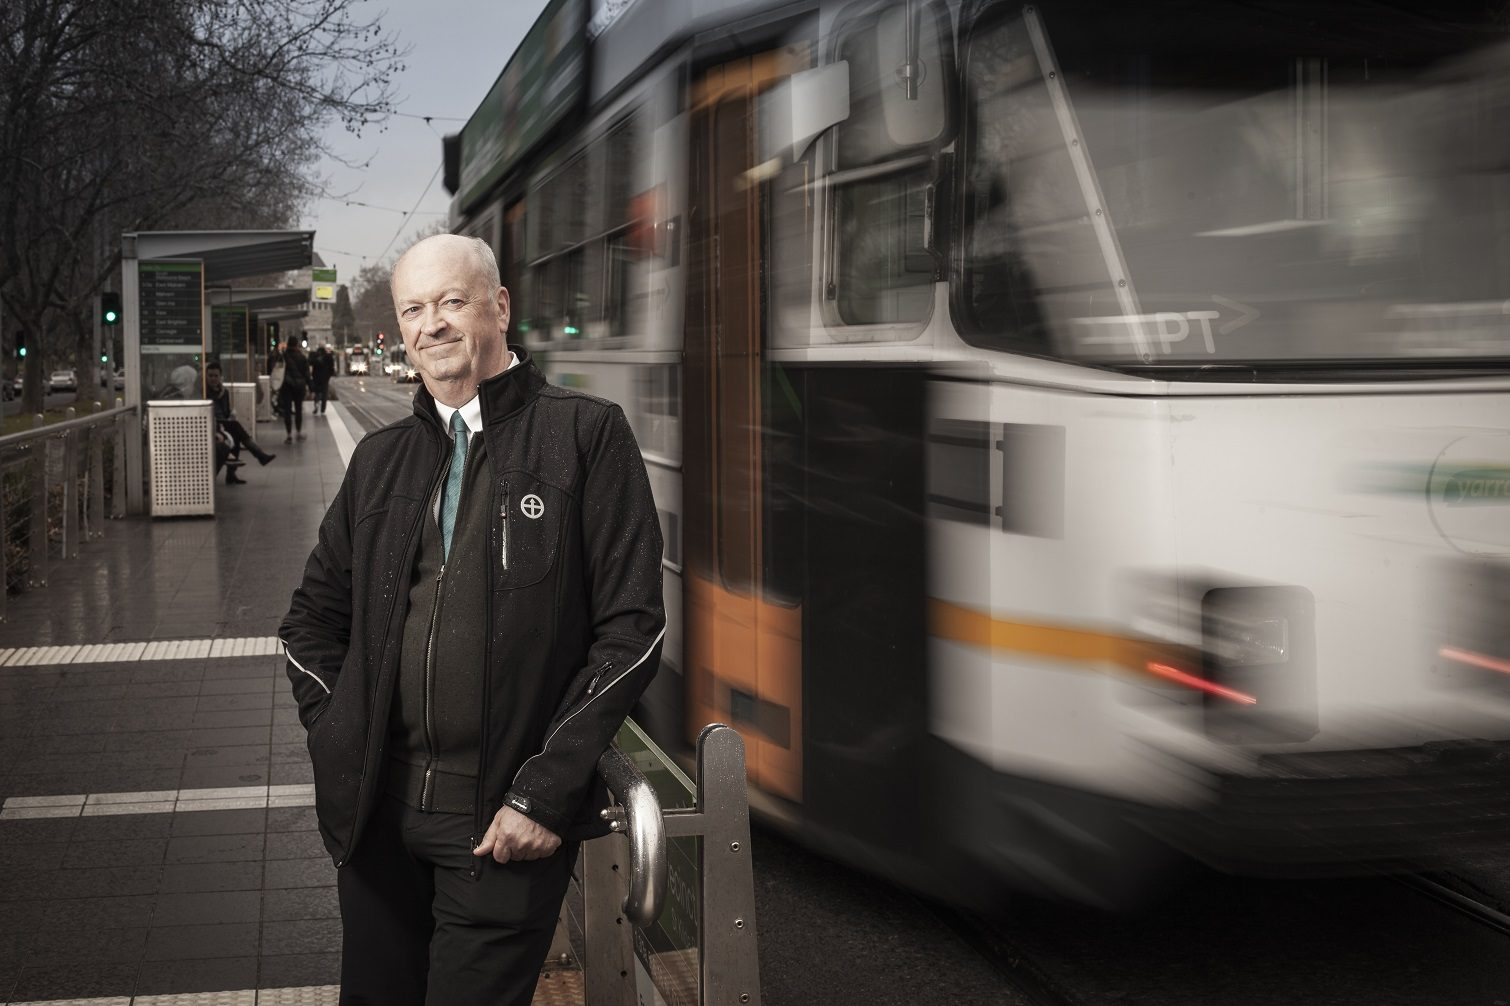 Graham Currie stands at a Melbourne tram stop while a tram goes by.